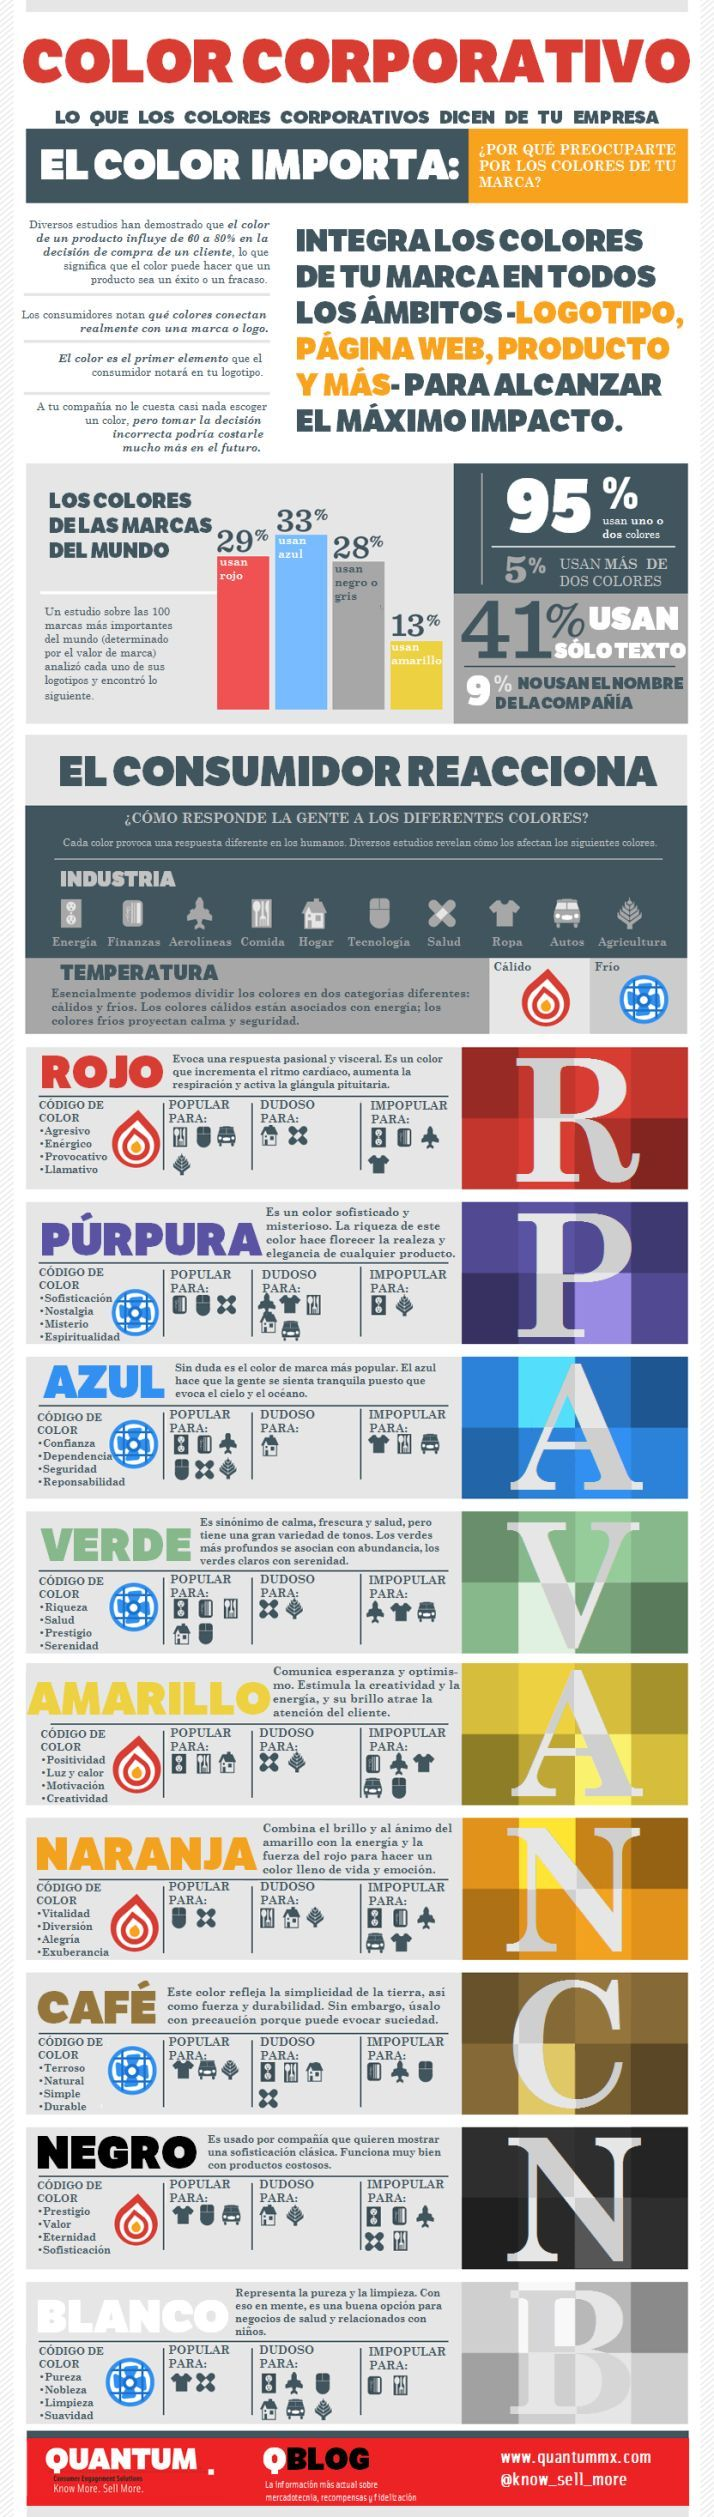 Lo que dice el color corporativo de tu empresa #infografia #infographic #design: